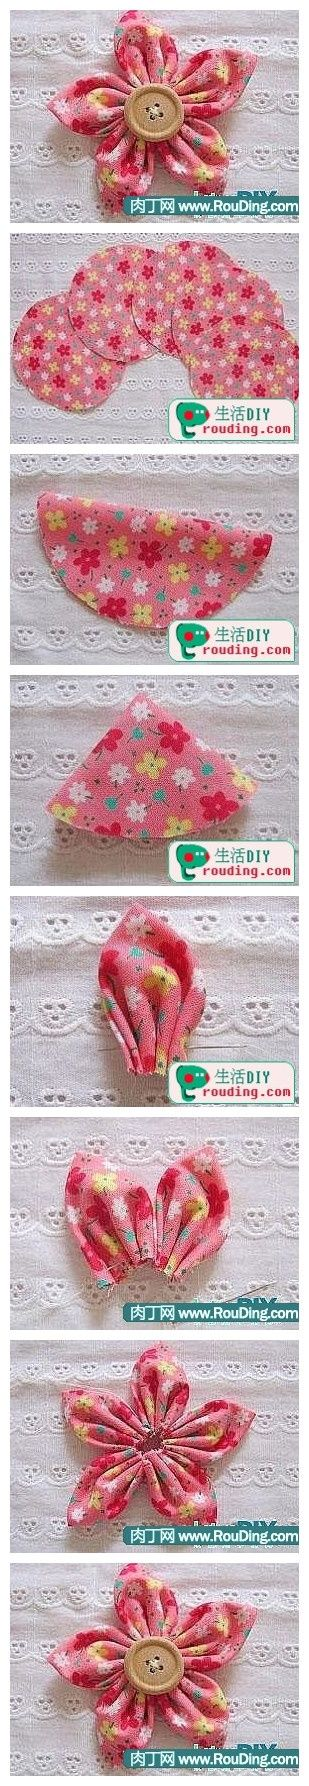 photo tutorial ... Japanese clothe flower ... Pretty flower diy ... sweet!!